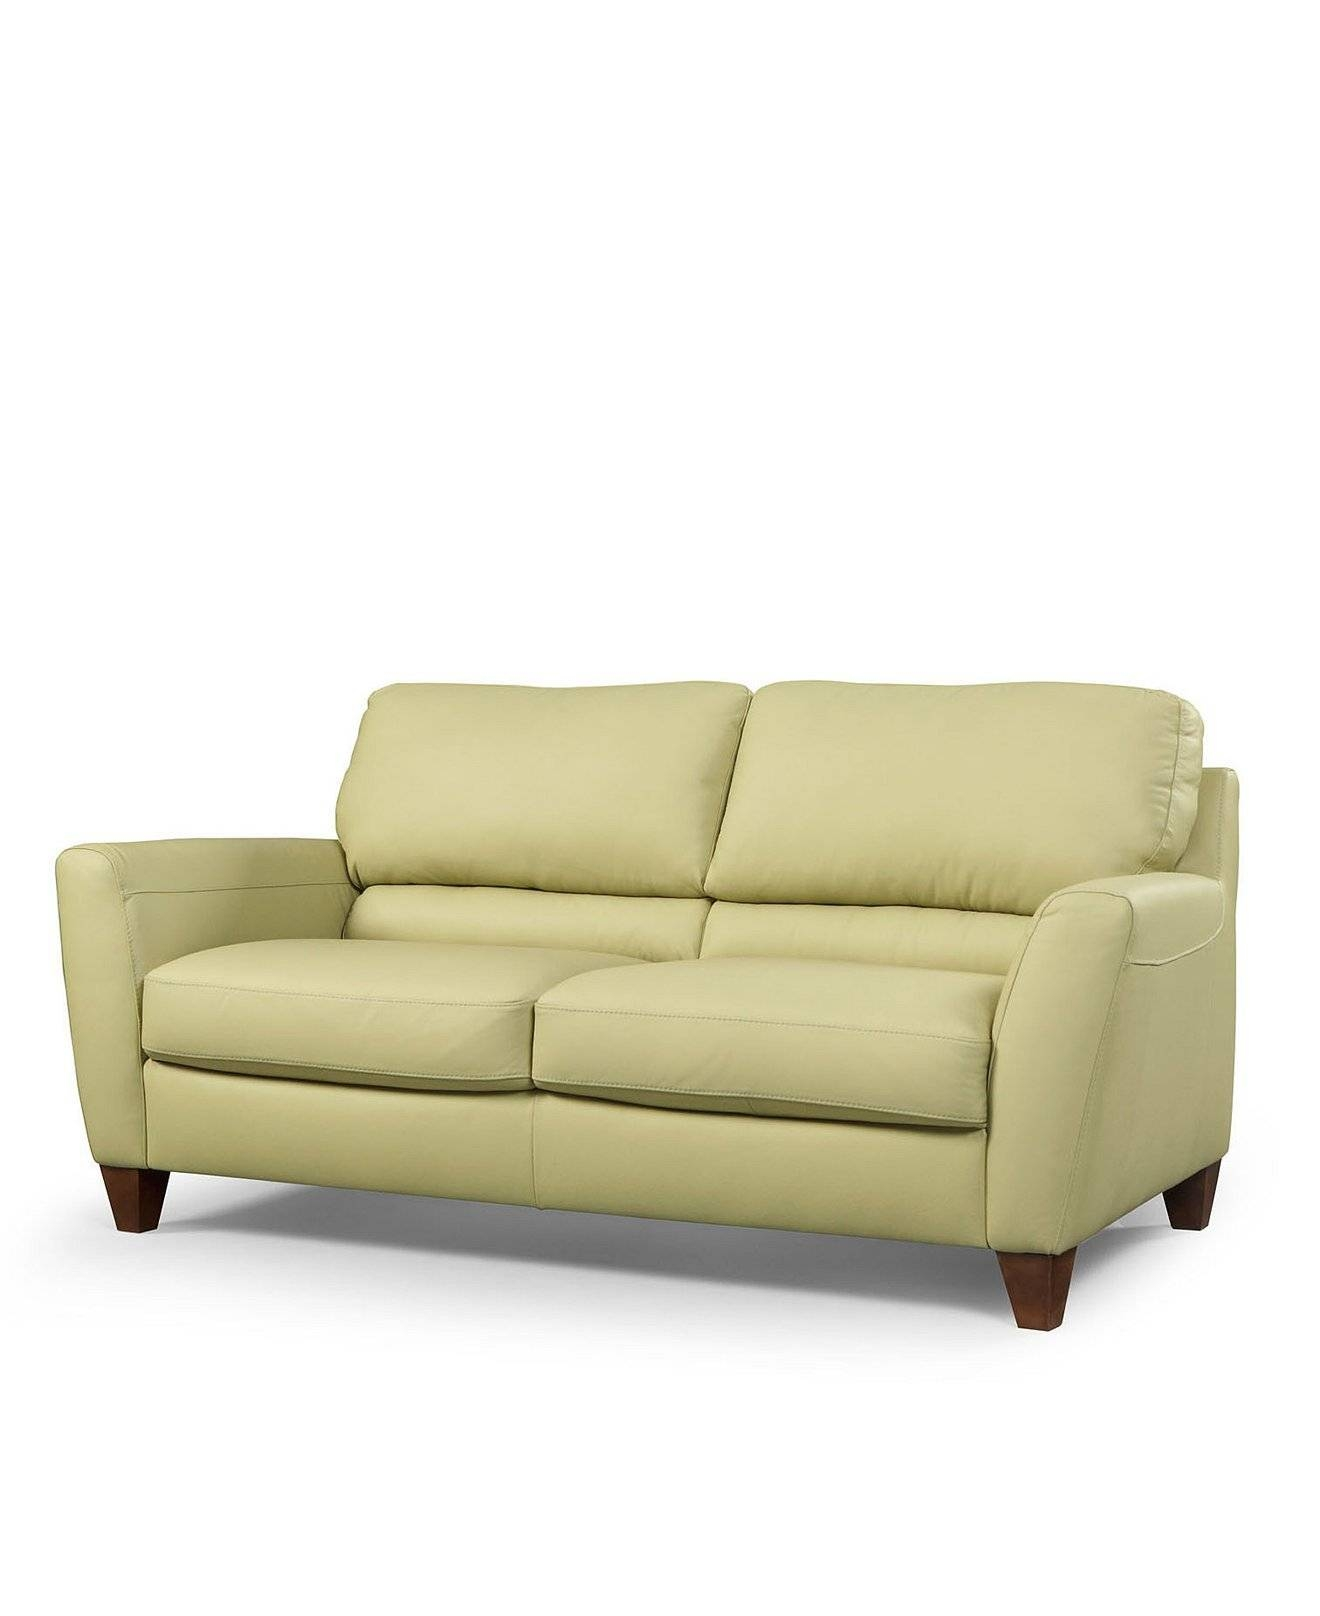 Sofas Center : Bolivar Leather Full Sleeper Sofa Only At Macys with regard to Macys Sofas (Image 19 of 25)